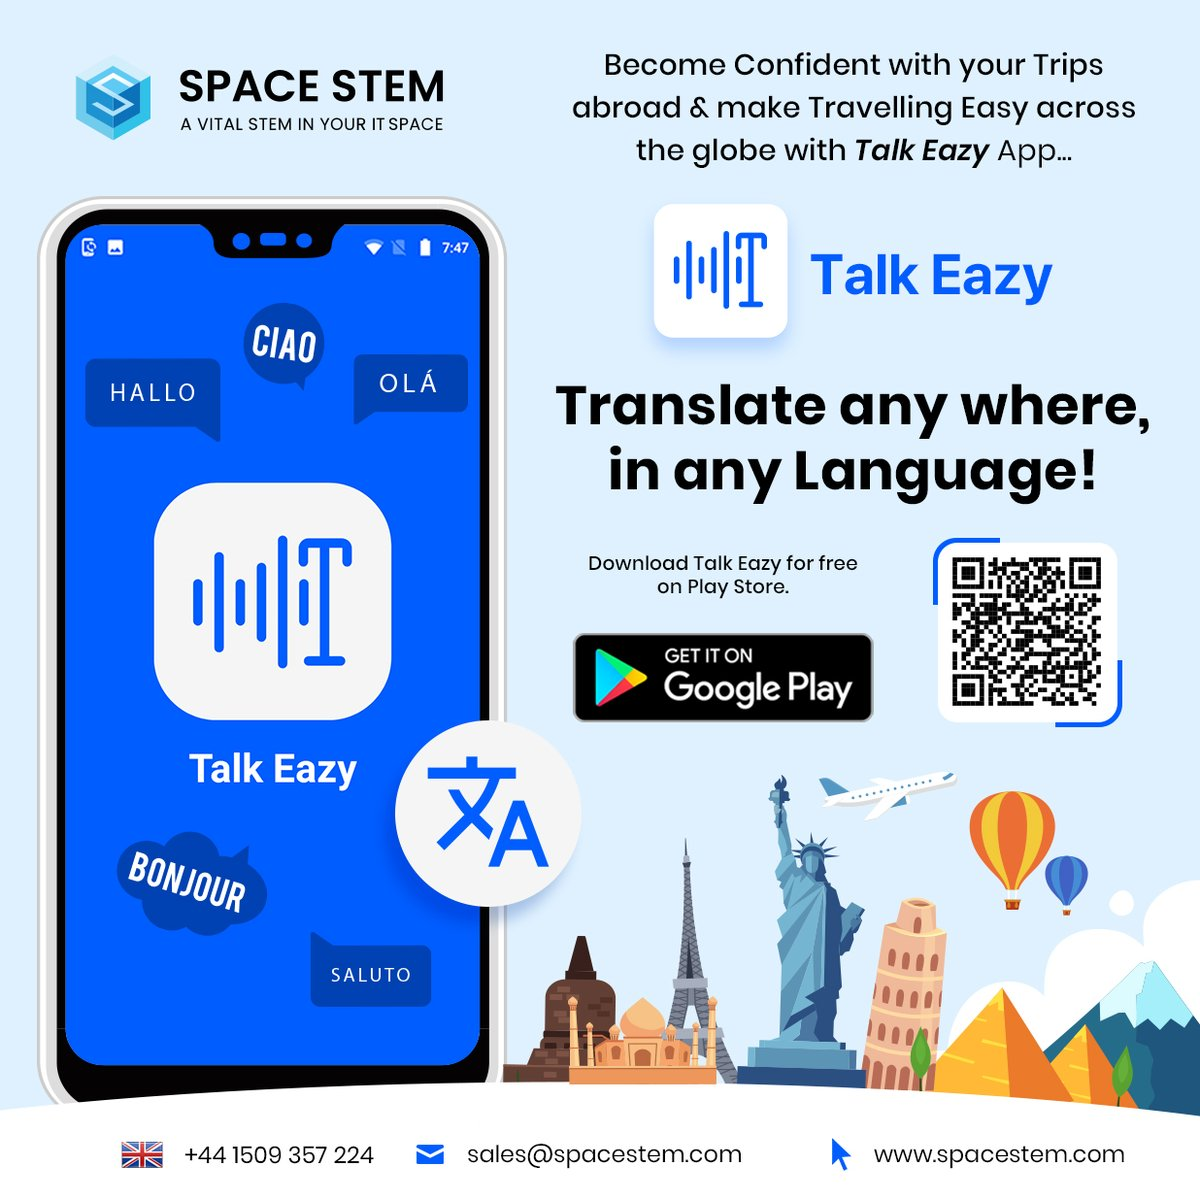 It's so easy with Talk Eazy...  Install the Talk Eazy App (Ad-free) by scanning the QR code and help yourself to translate your language into any foreign language.  Download Talk Eazy for free on Play Store: https://lnkd.in/fMBgSXY  #englishlearning #languagetranslation #travelpic.twitter.com/m8zzMBsYMj